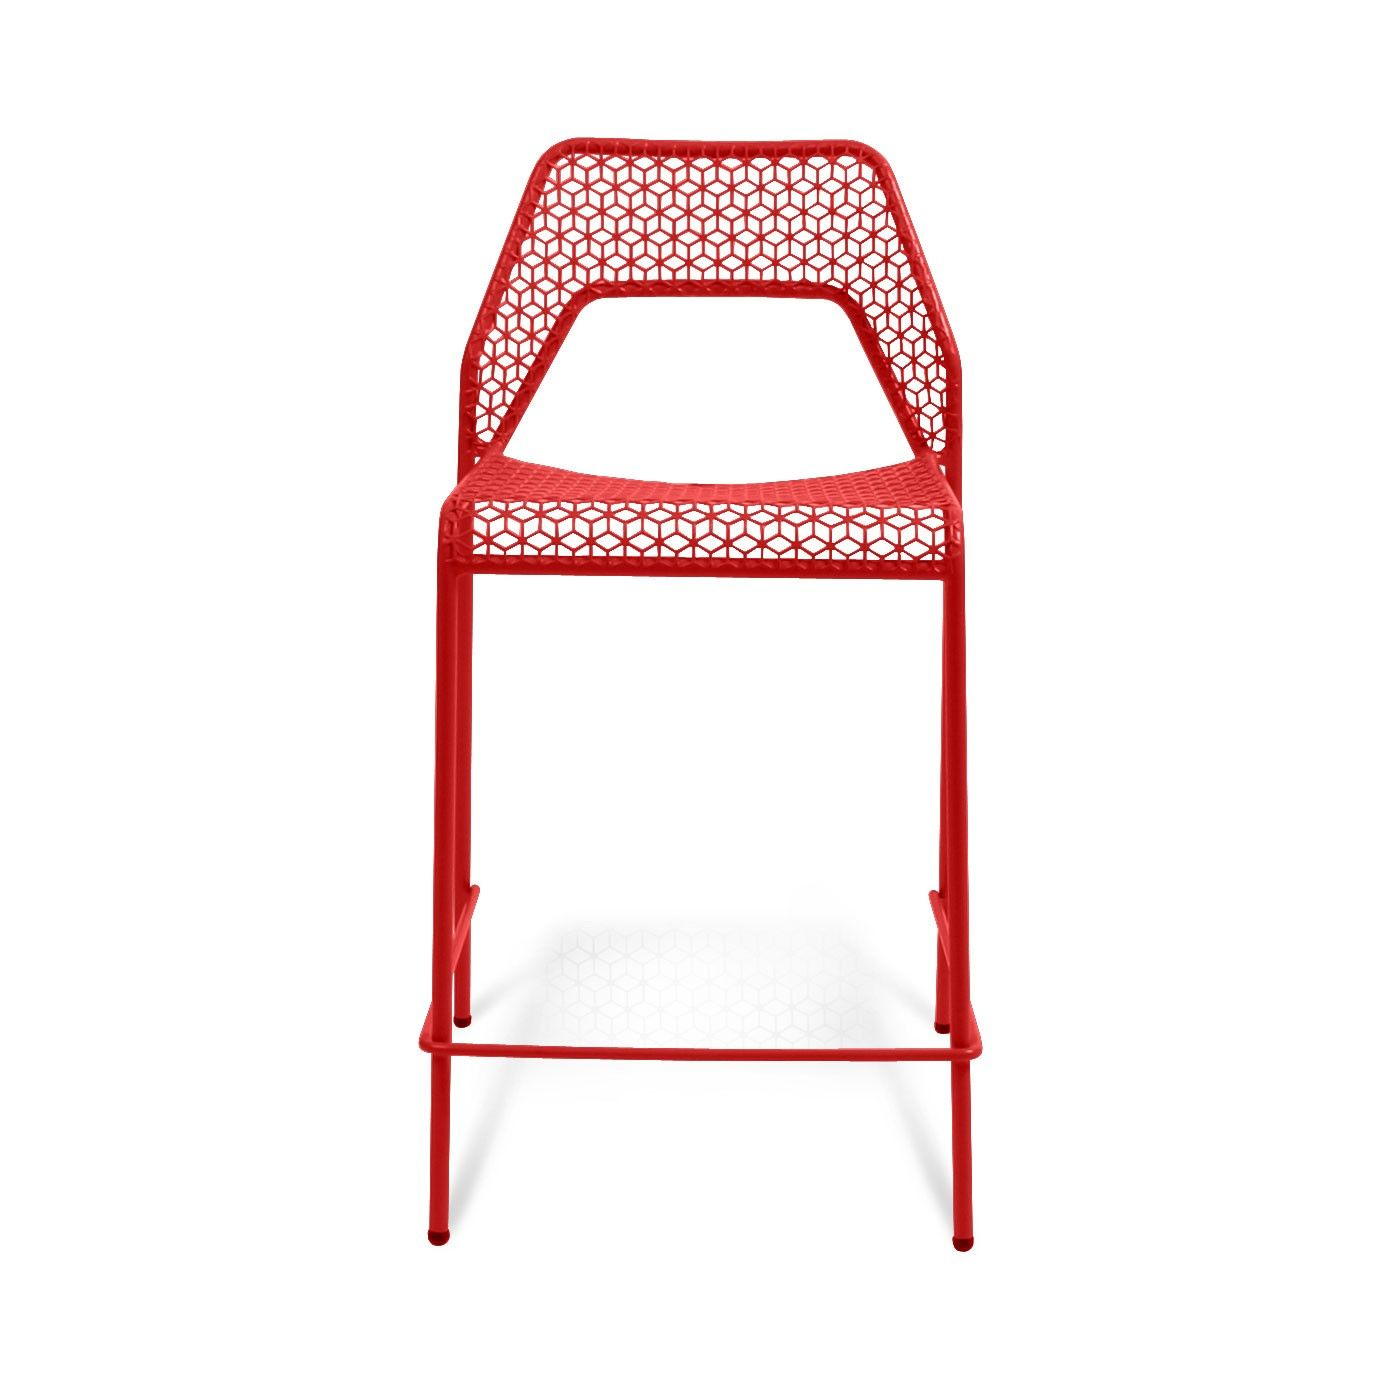 Genial Modern Humble Red Indoor/Outdoor Hot Mesh Counterstool. Comes In Off White  Too.